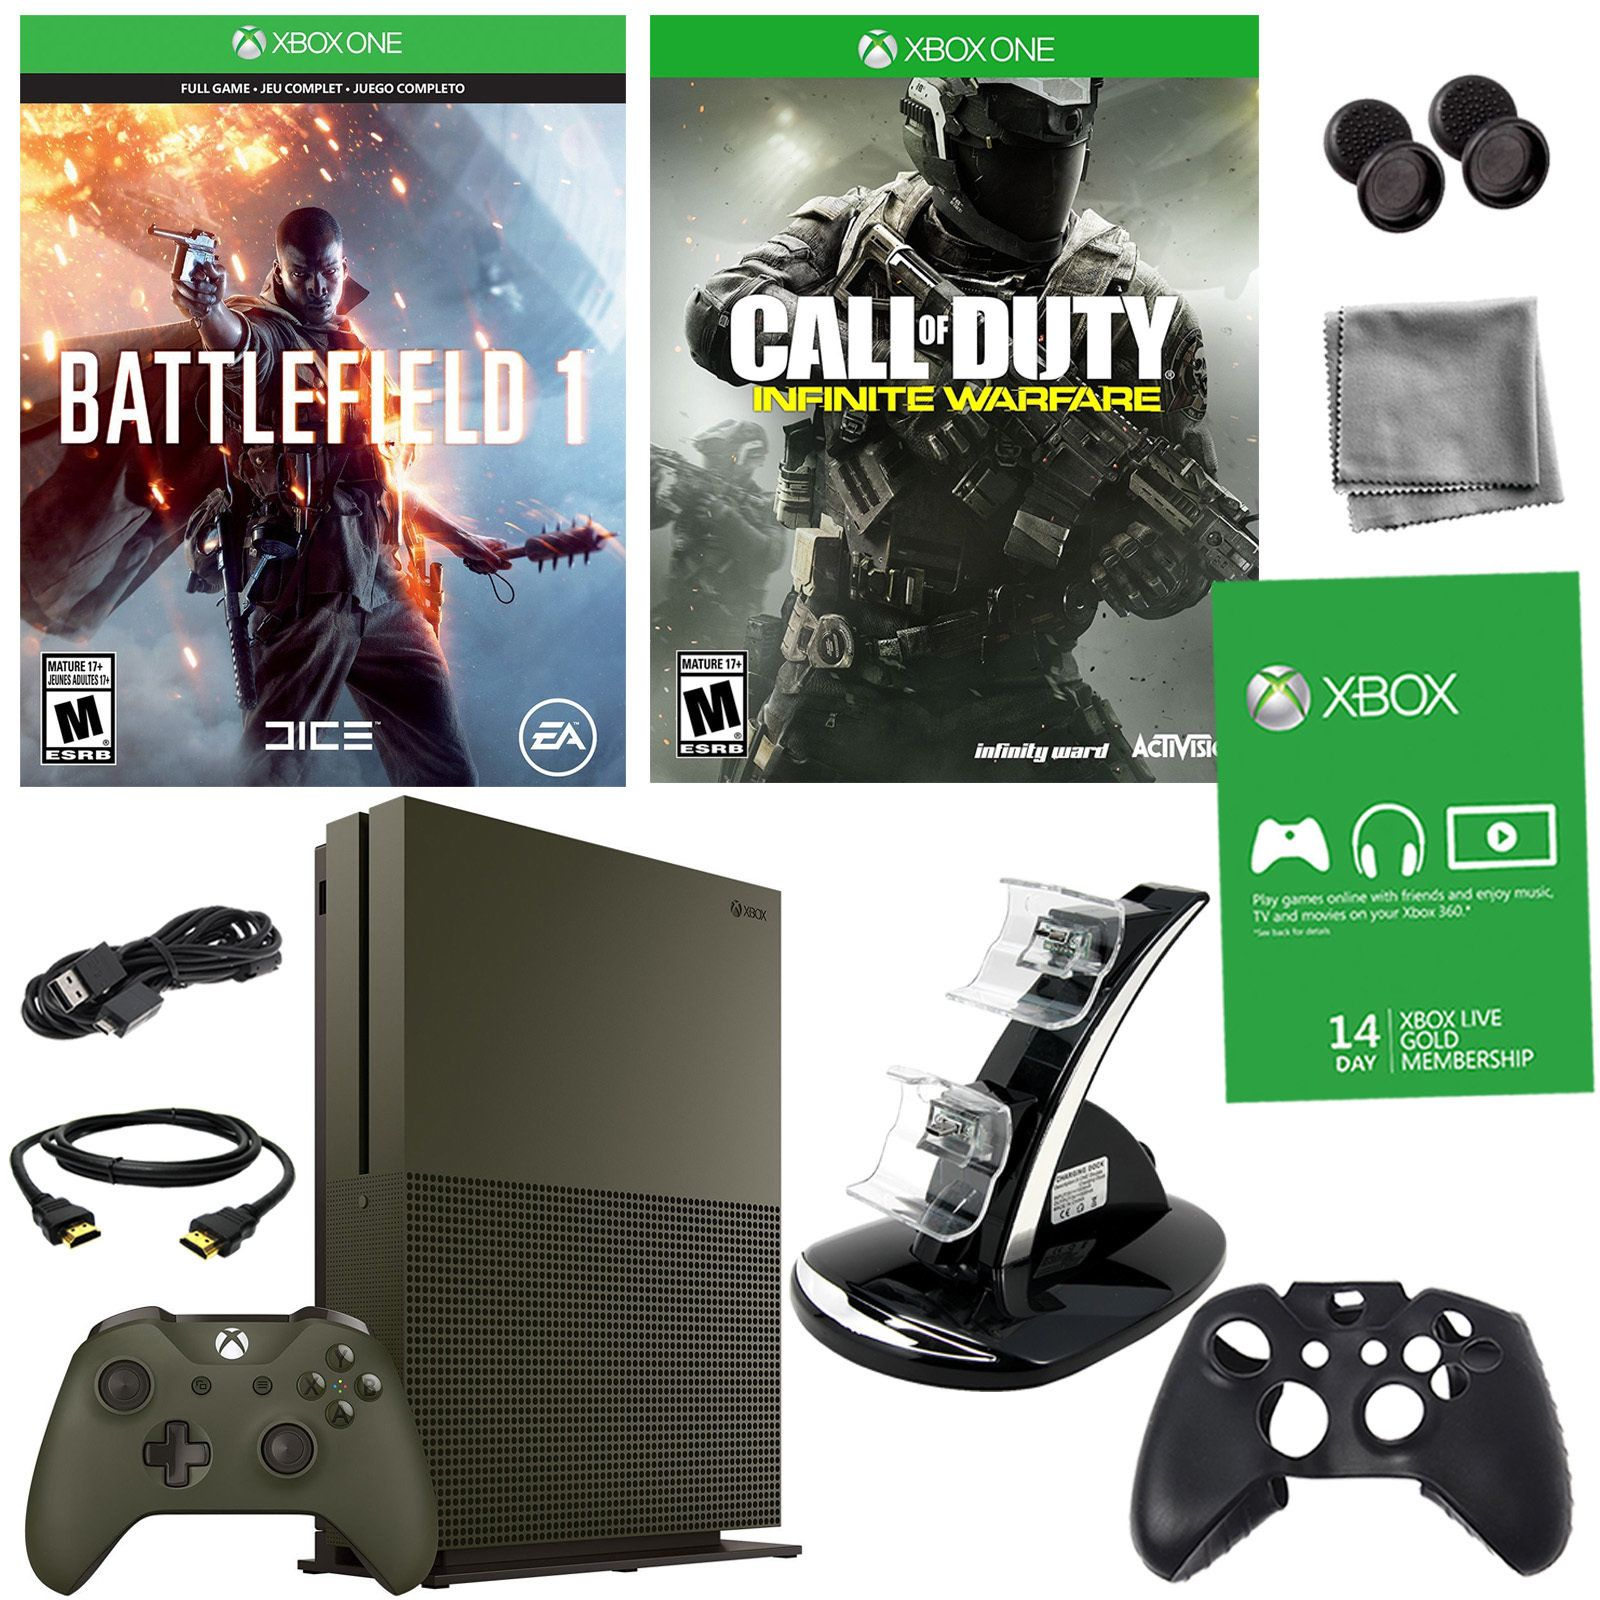 Microsoft Xbox One S 1tb Battlefield 1 Bundle With Cod Infinite